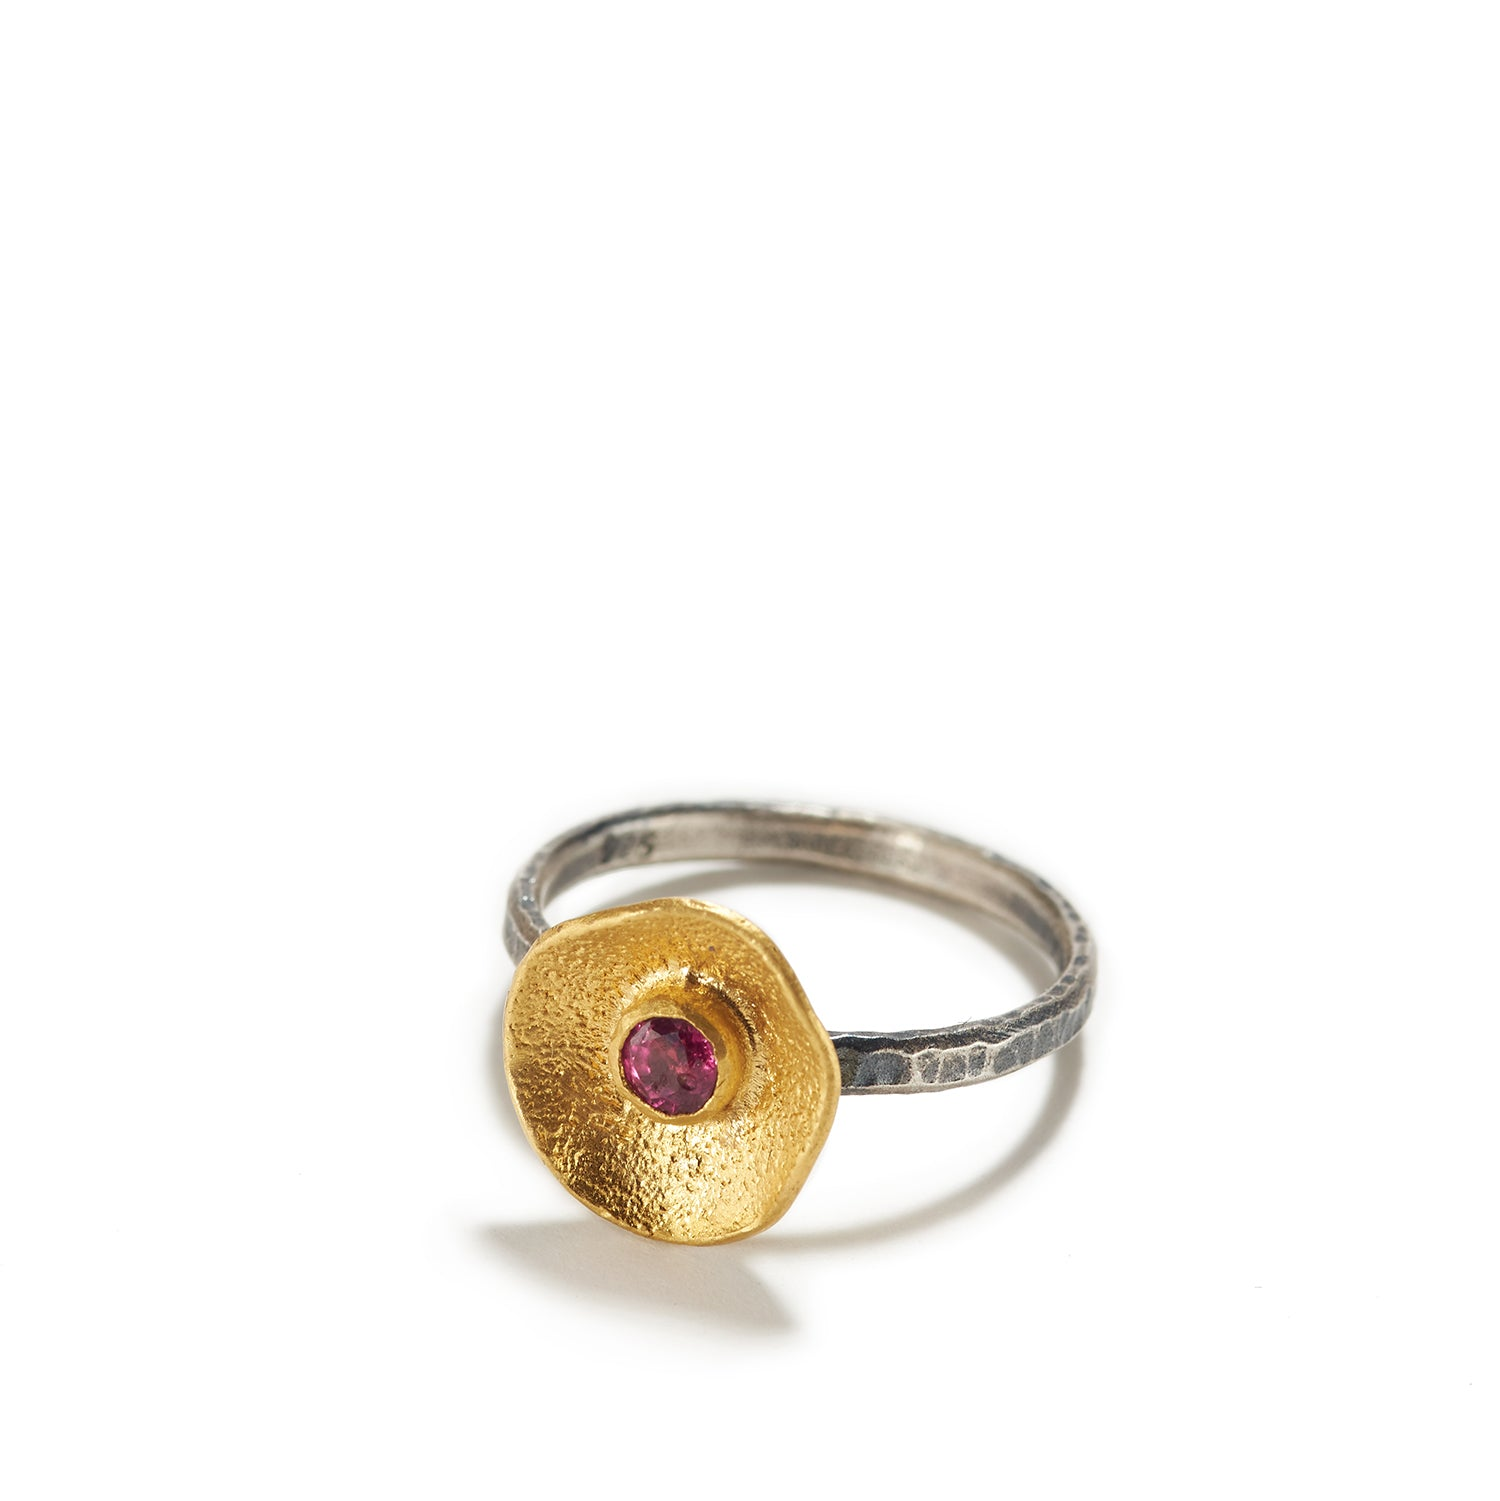 Undulant Golden Cup with Ruby Ring